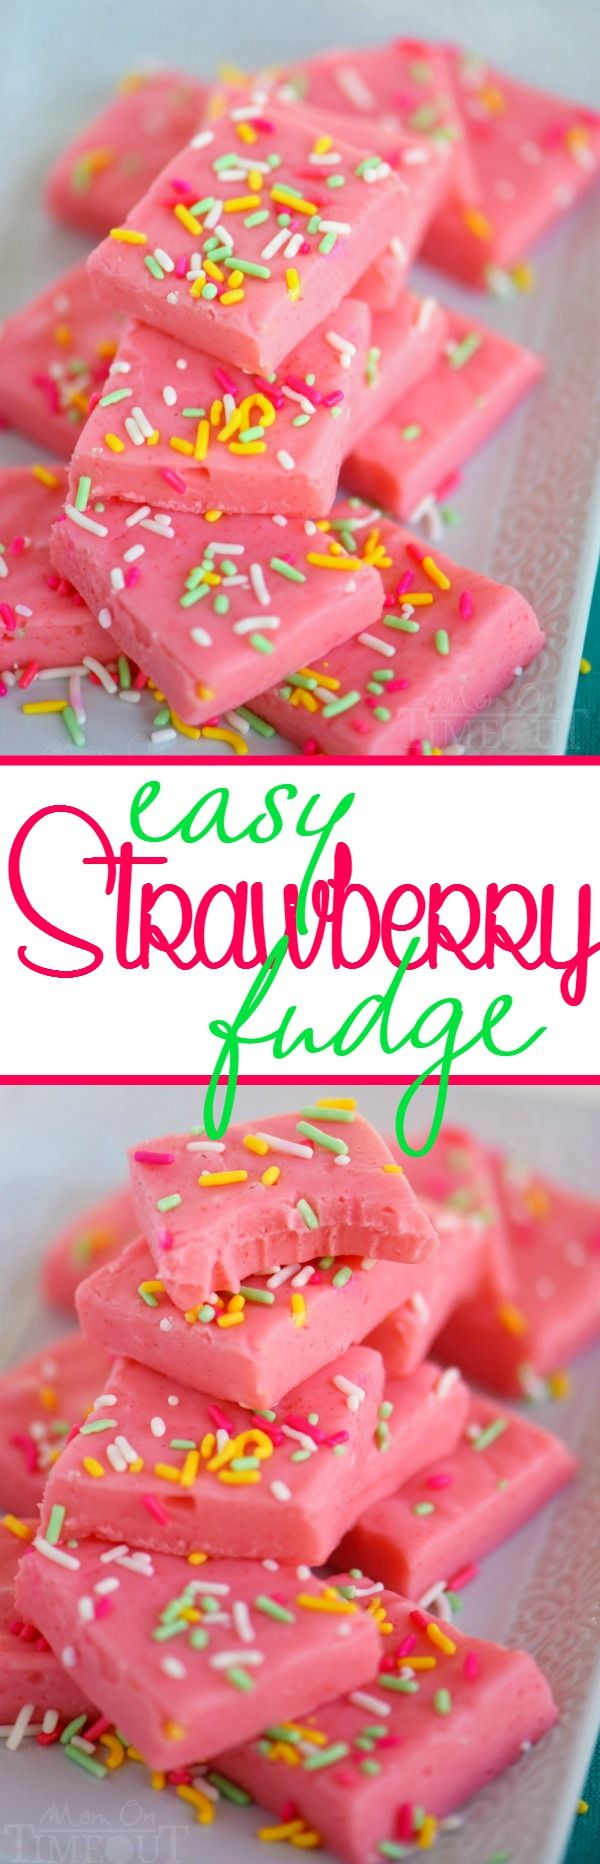 This Easy Strawberry Fudge takes just three ingredients and tastes like summer!  Pretty and pink, this fudge is so much fun to eat! Whip up a batch today!